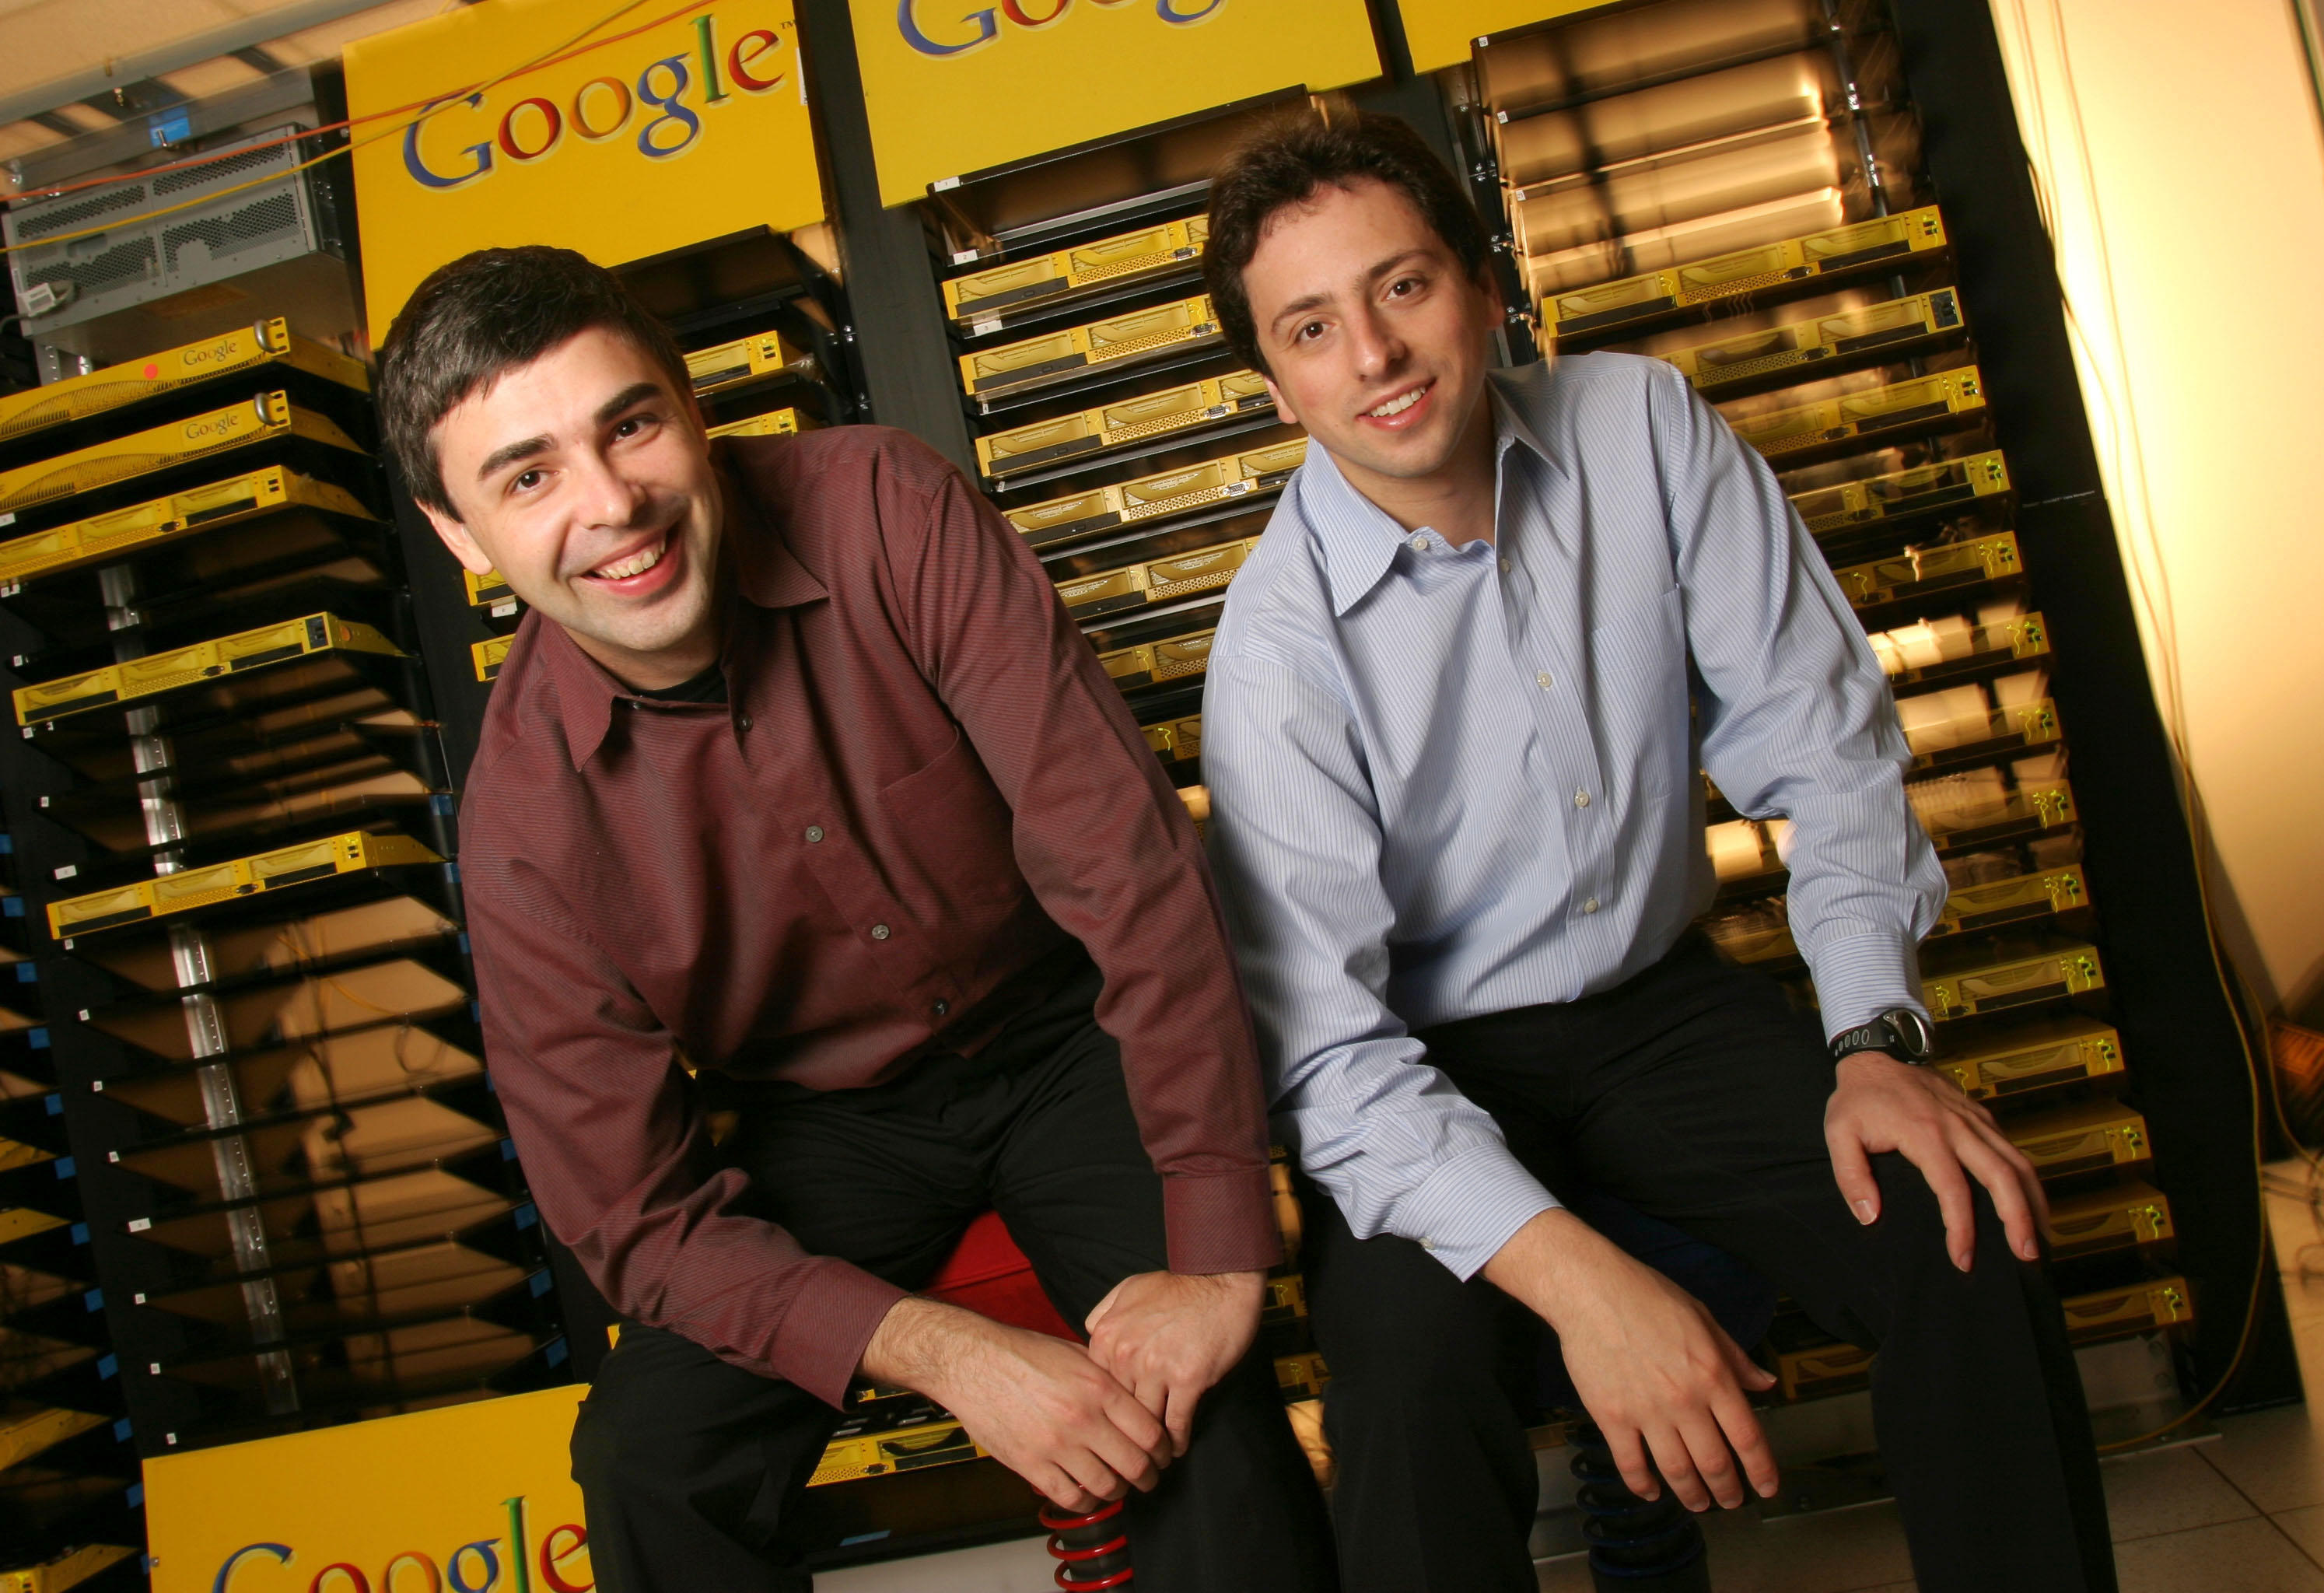 <p>Google, founded by Larry Page and Sergey Brin, was founded 20 years ago today.&nbsp;</p>